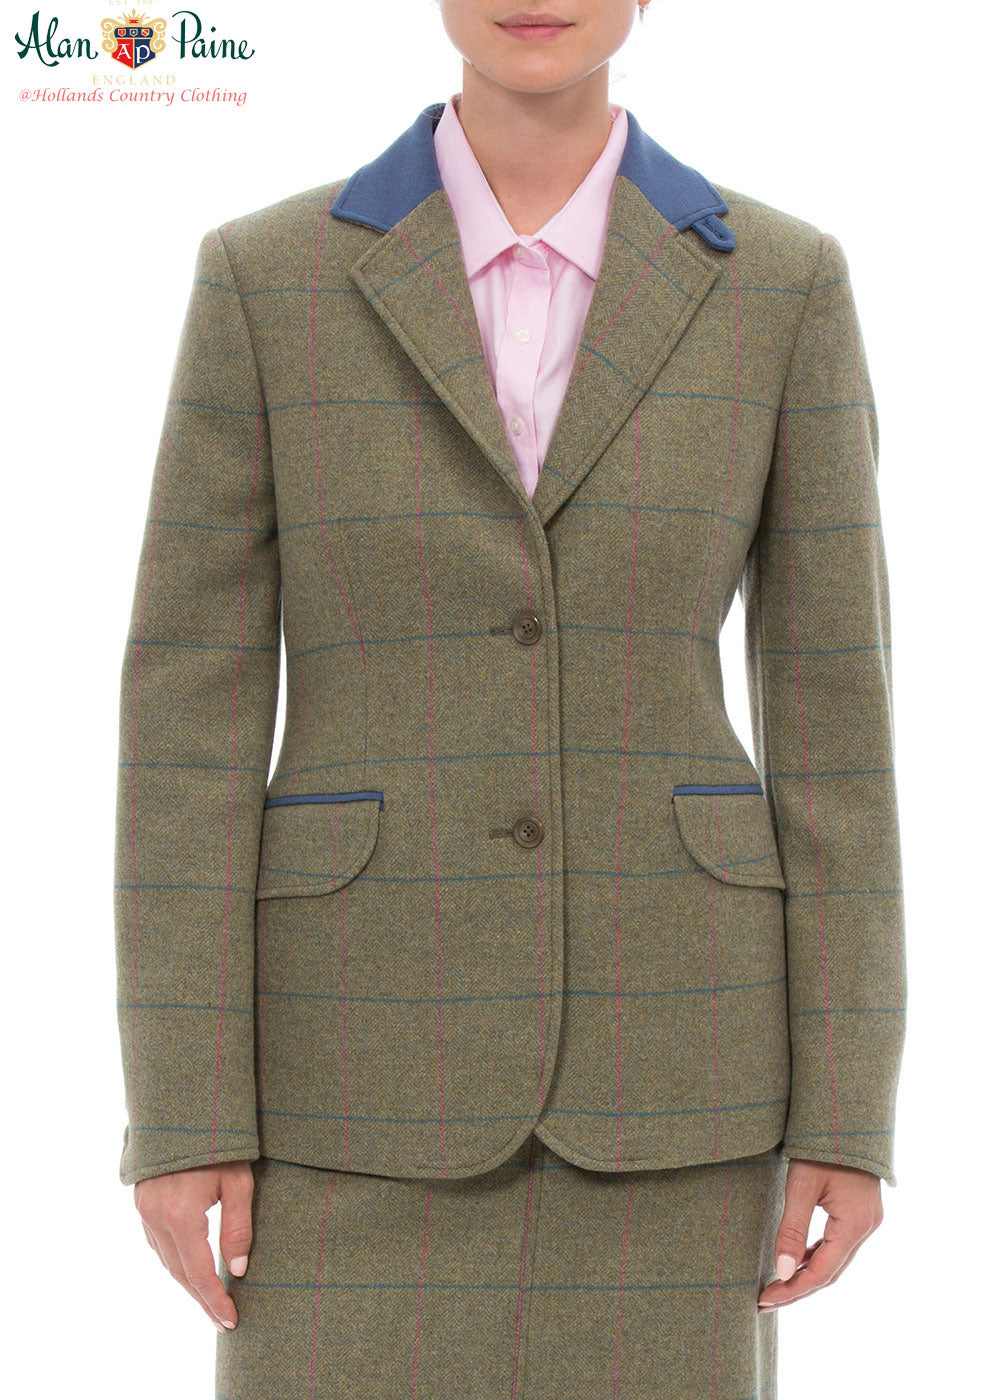 Juniper and blue trim Combrook Ladies Tweed Blazer by Alan Paine.